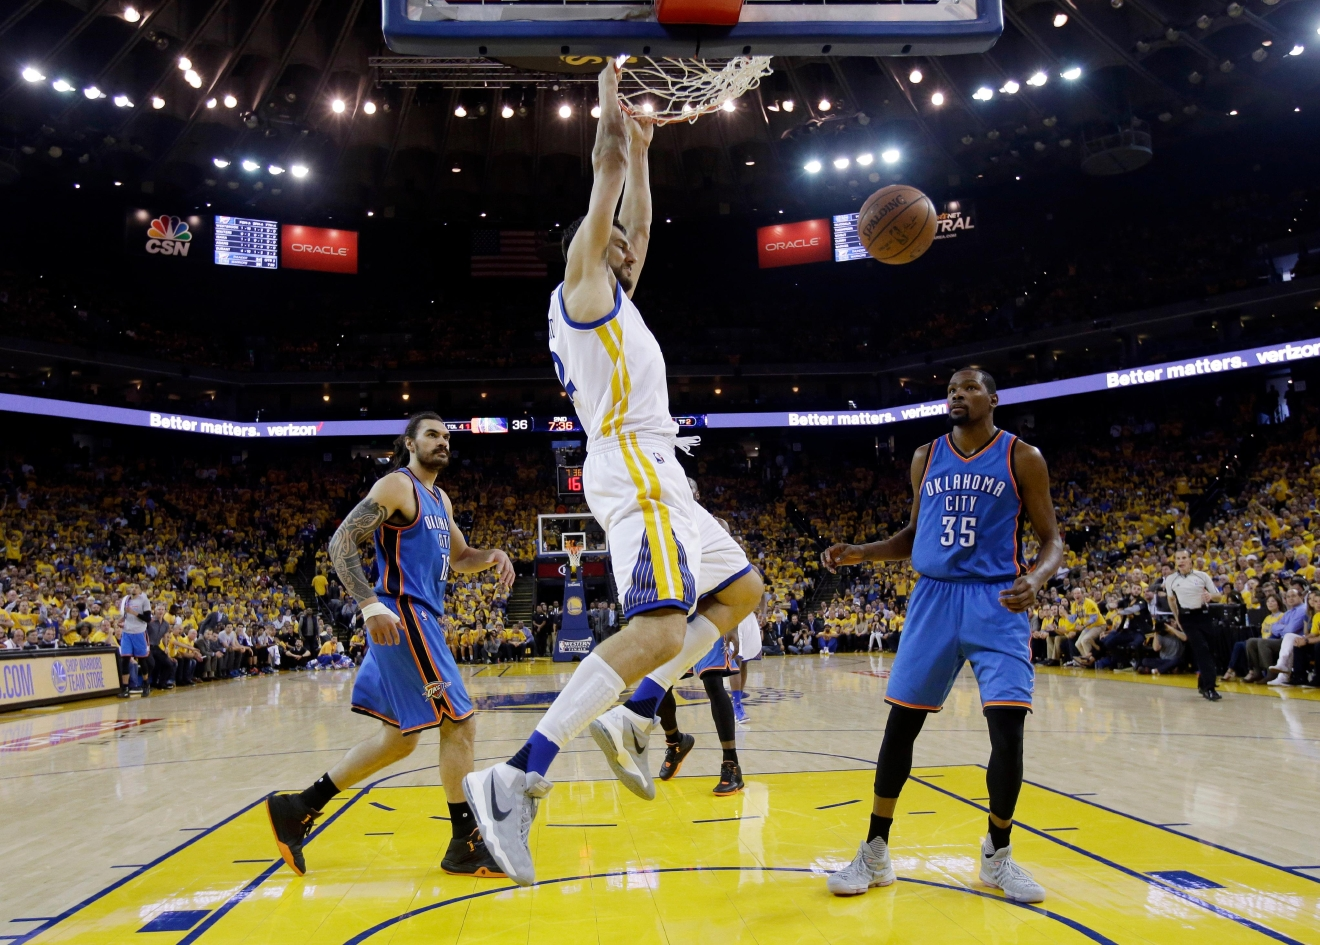 Golden State Warriors' Andrew Bogut, center, dunks past Oklahoma City Thunder's Kevin Durant (35) and Steven Adams, left, during the first half in Game 5 of the NBA basketball Western Conference finals Thursday, May 26, 2016, in Oakland, Calif. (AP Photo/Marcio Jose Sanchez)